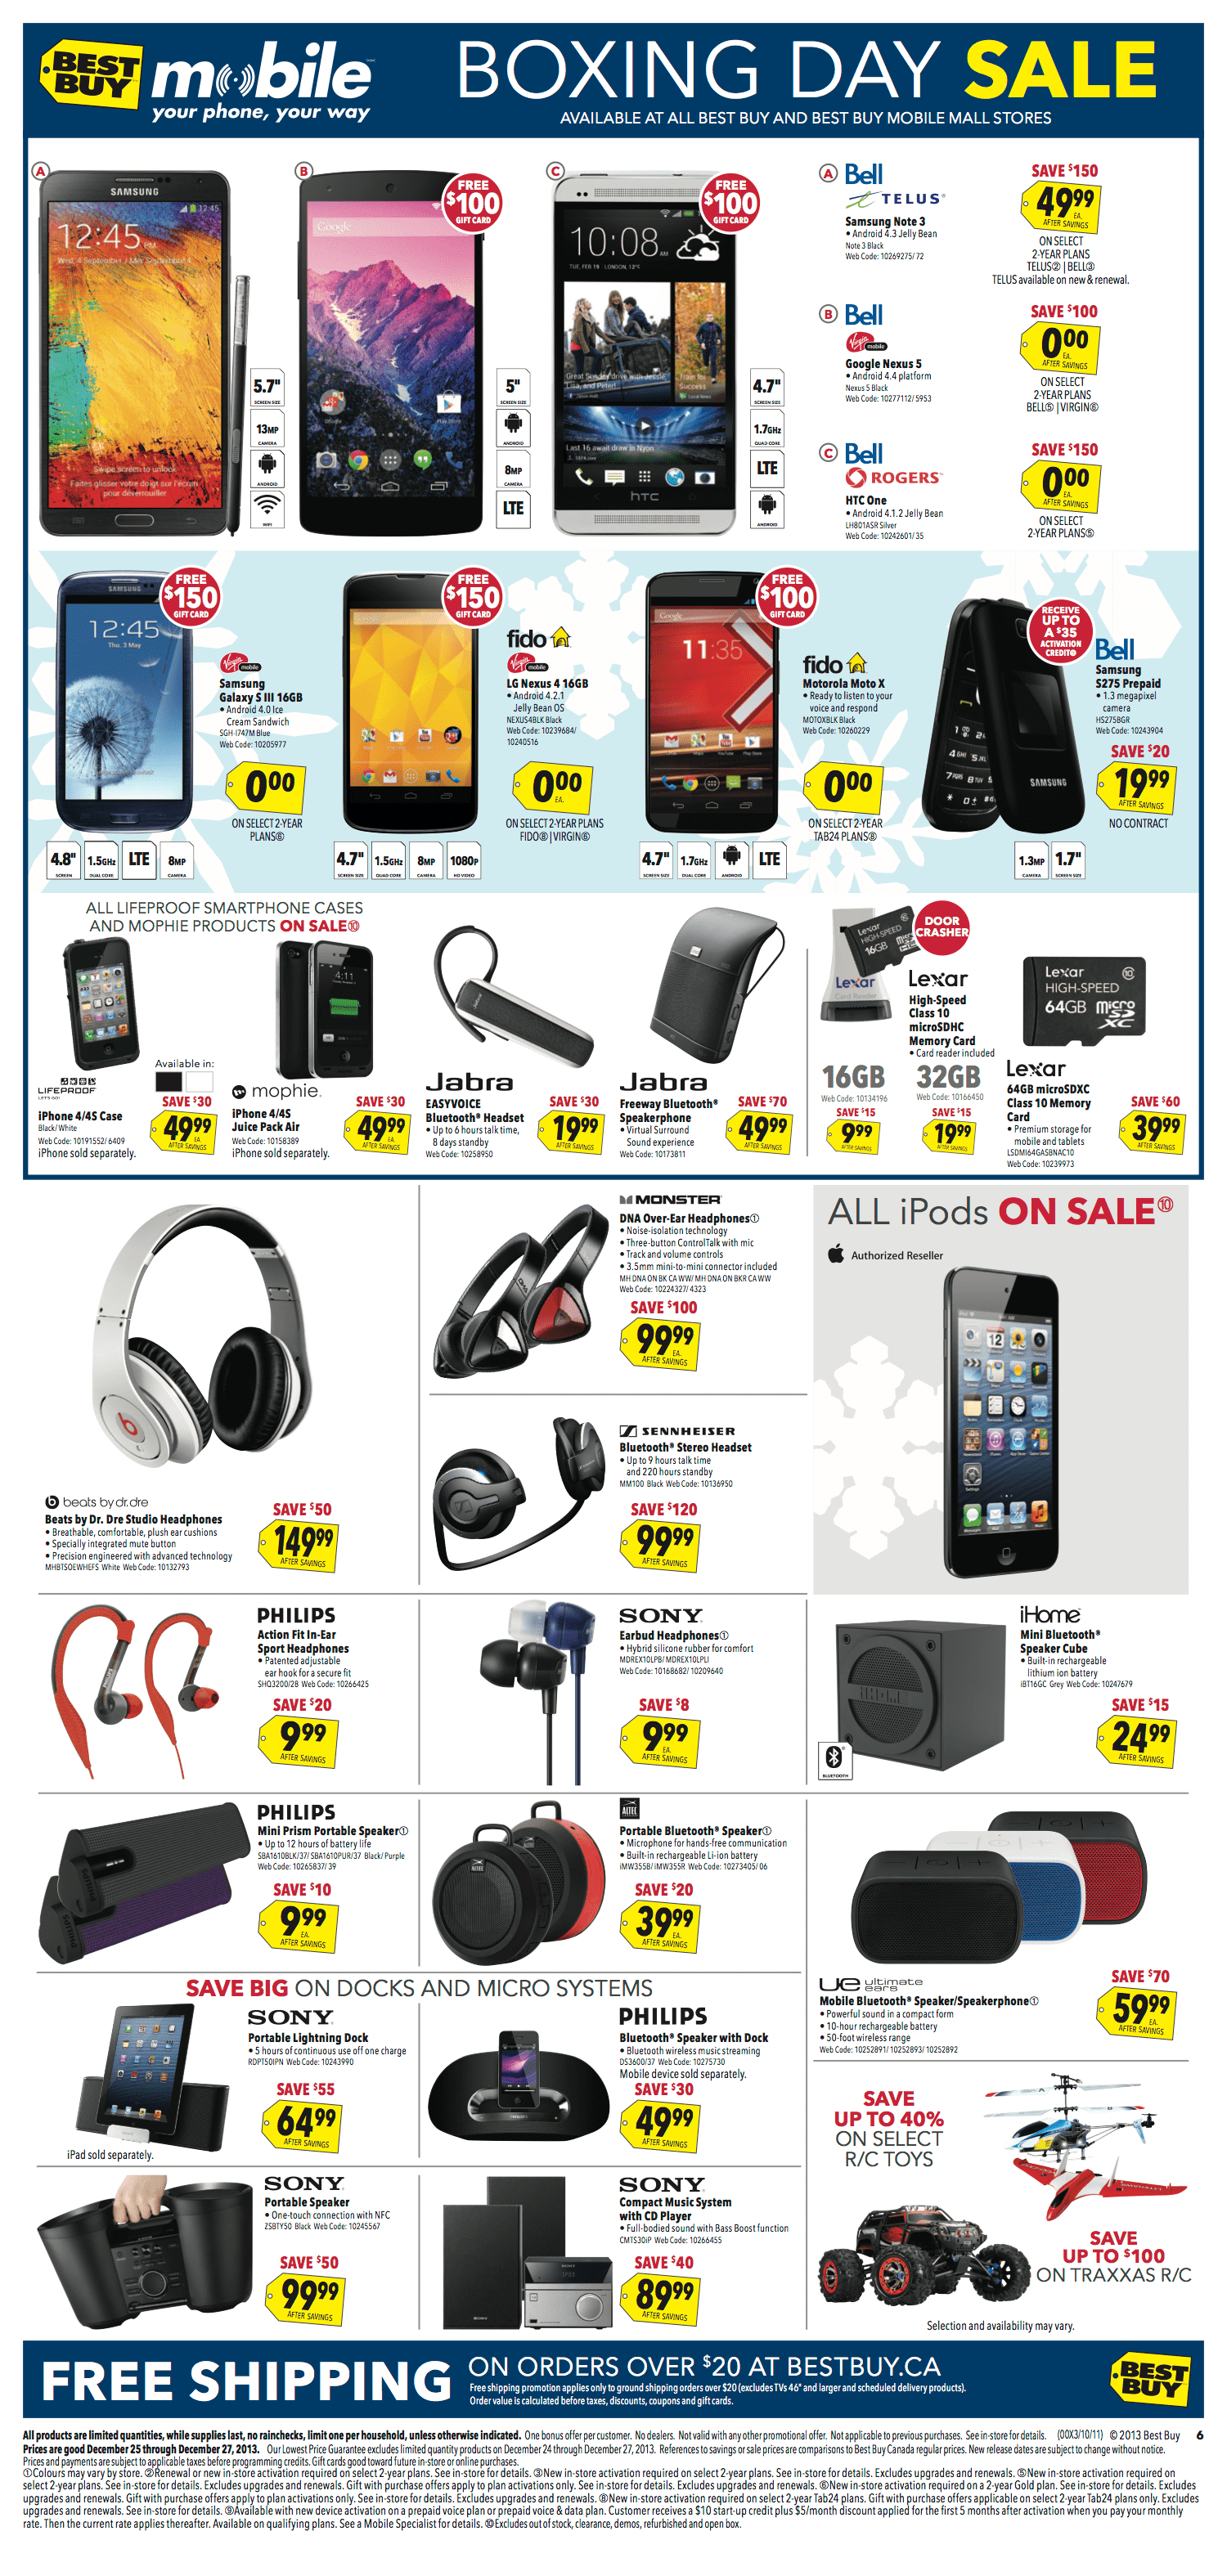 Dec 16, · Even though the flyer is 28 pages, this is a very disappointing Boxing Day at Best Buy (at least for the video games). NOTE: Some of these are only 2-day deals (Dec 26th and 27th), while some are the full week.